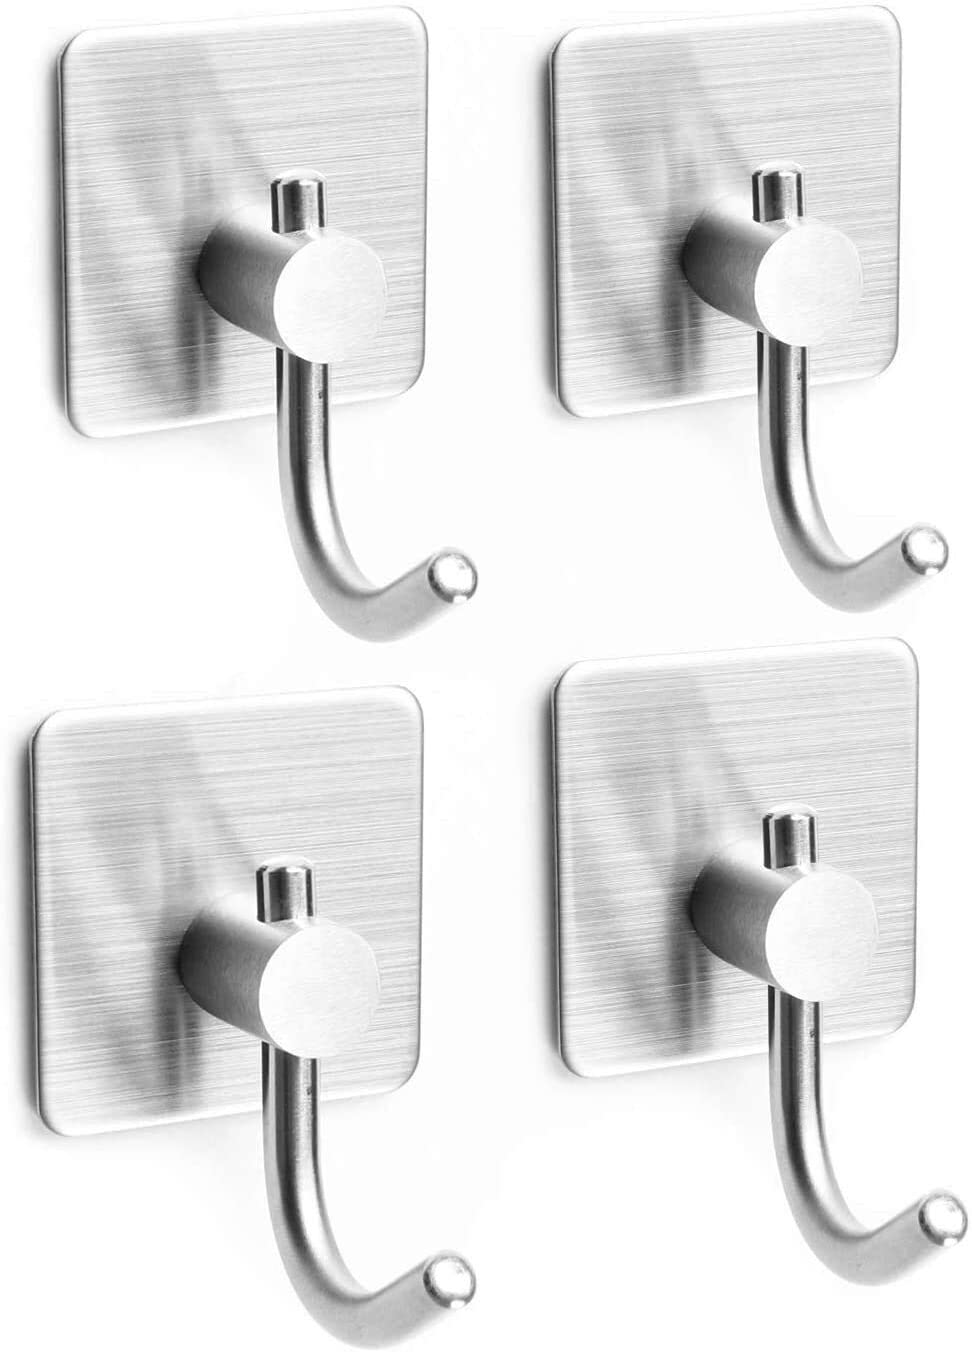 Home TOGU Stainless Steel trust Self Adhesive Ho Wall Heavy Hooks Duty Manufacturer OFFicial shop